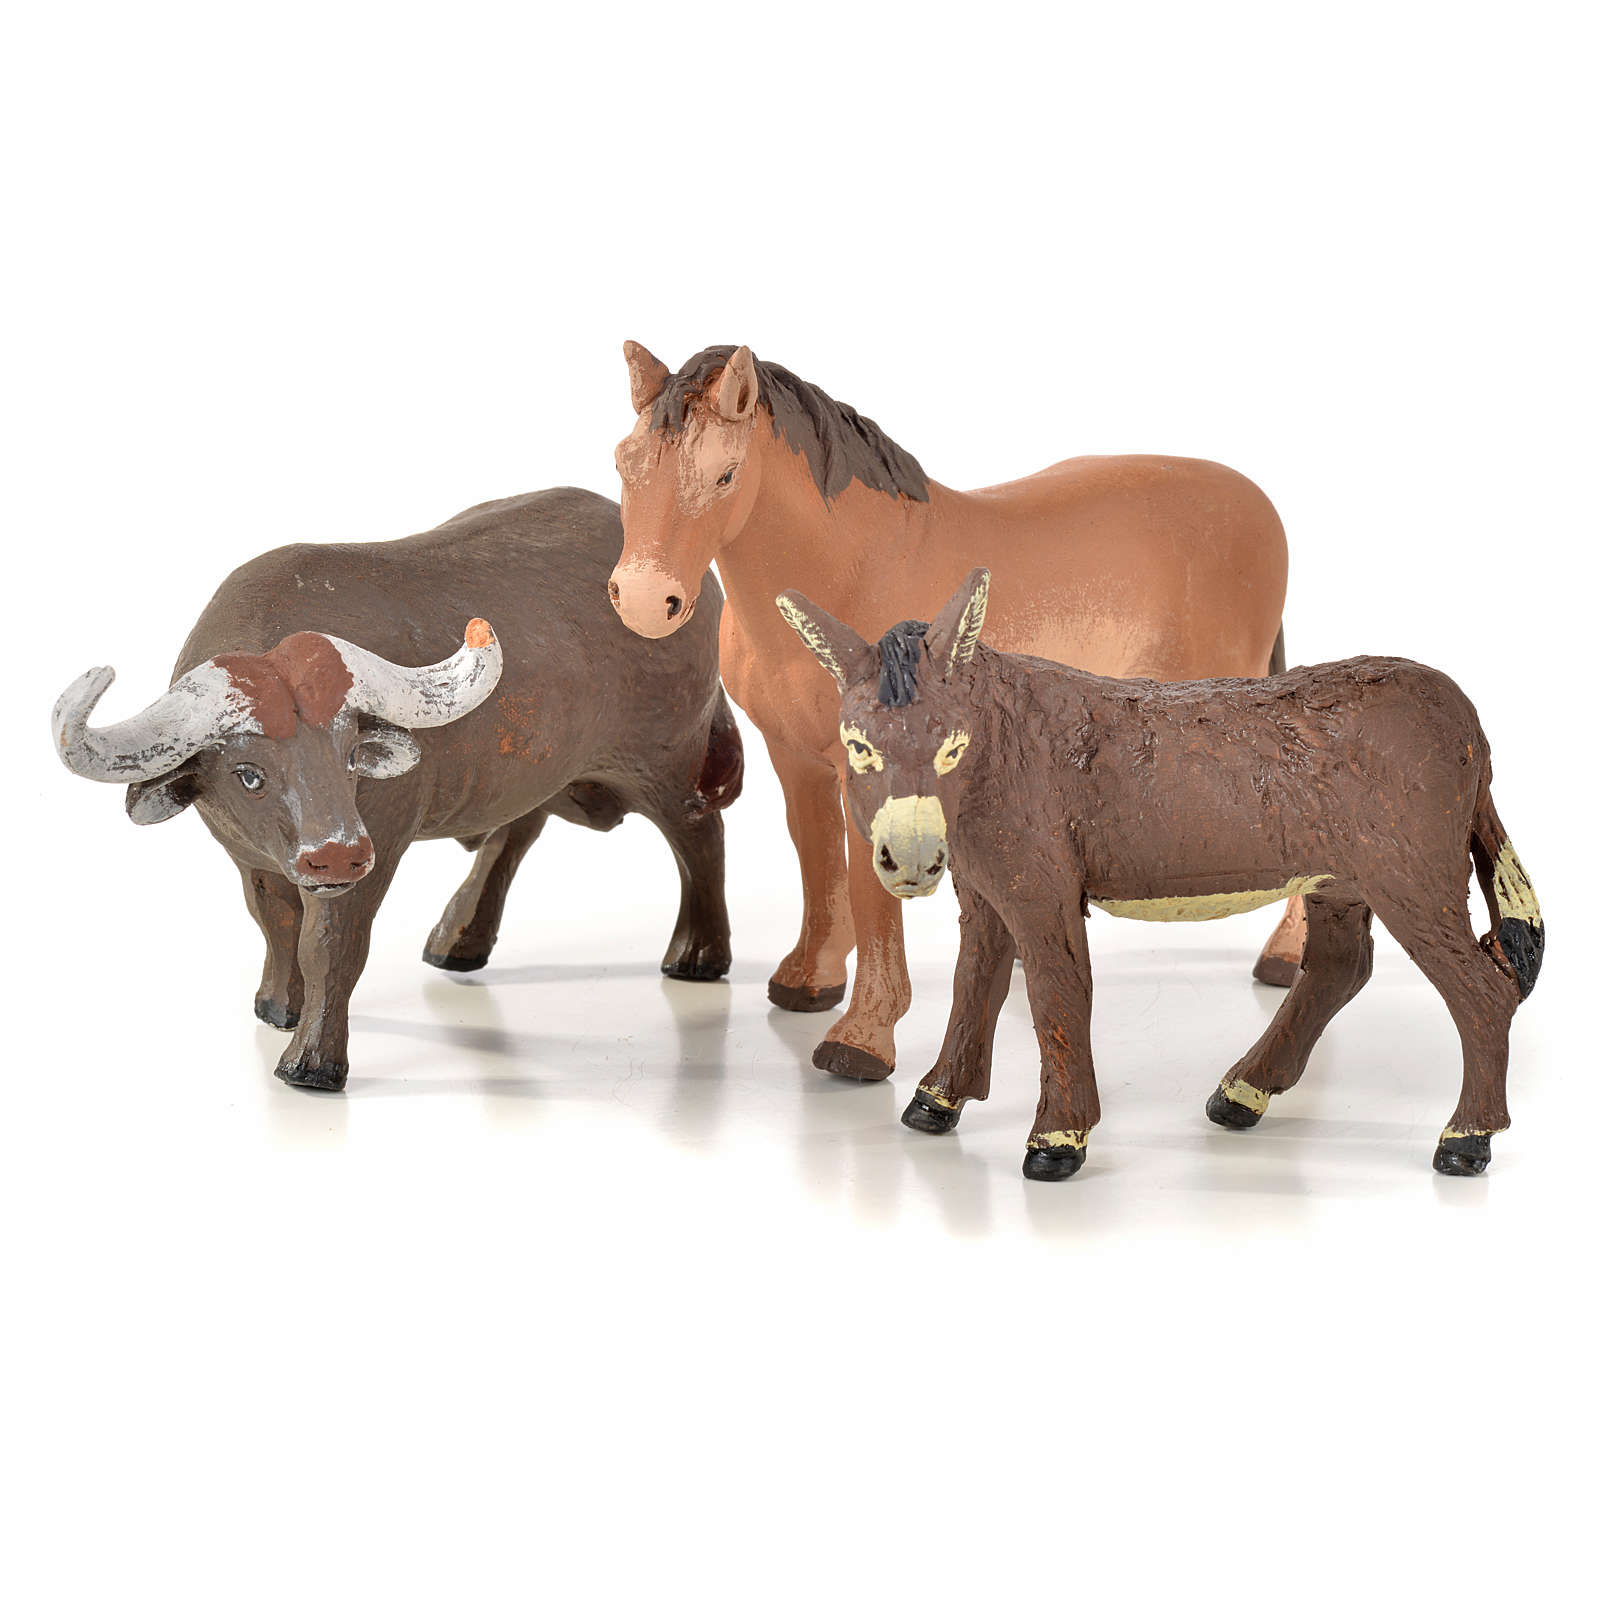 Neapolitan Nativity scene figurine, horse, donkey and buffalo 10 4